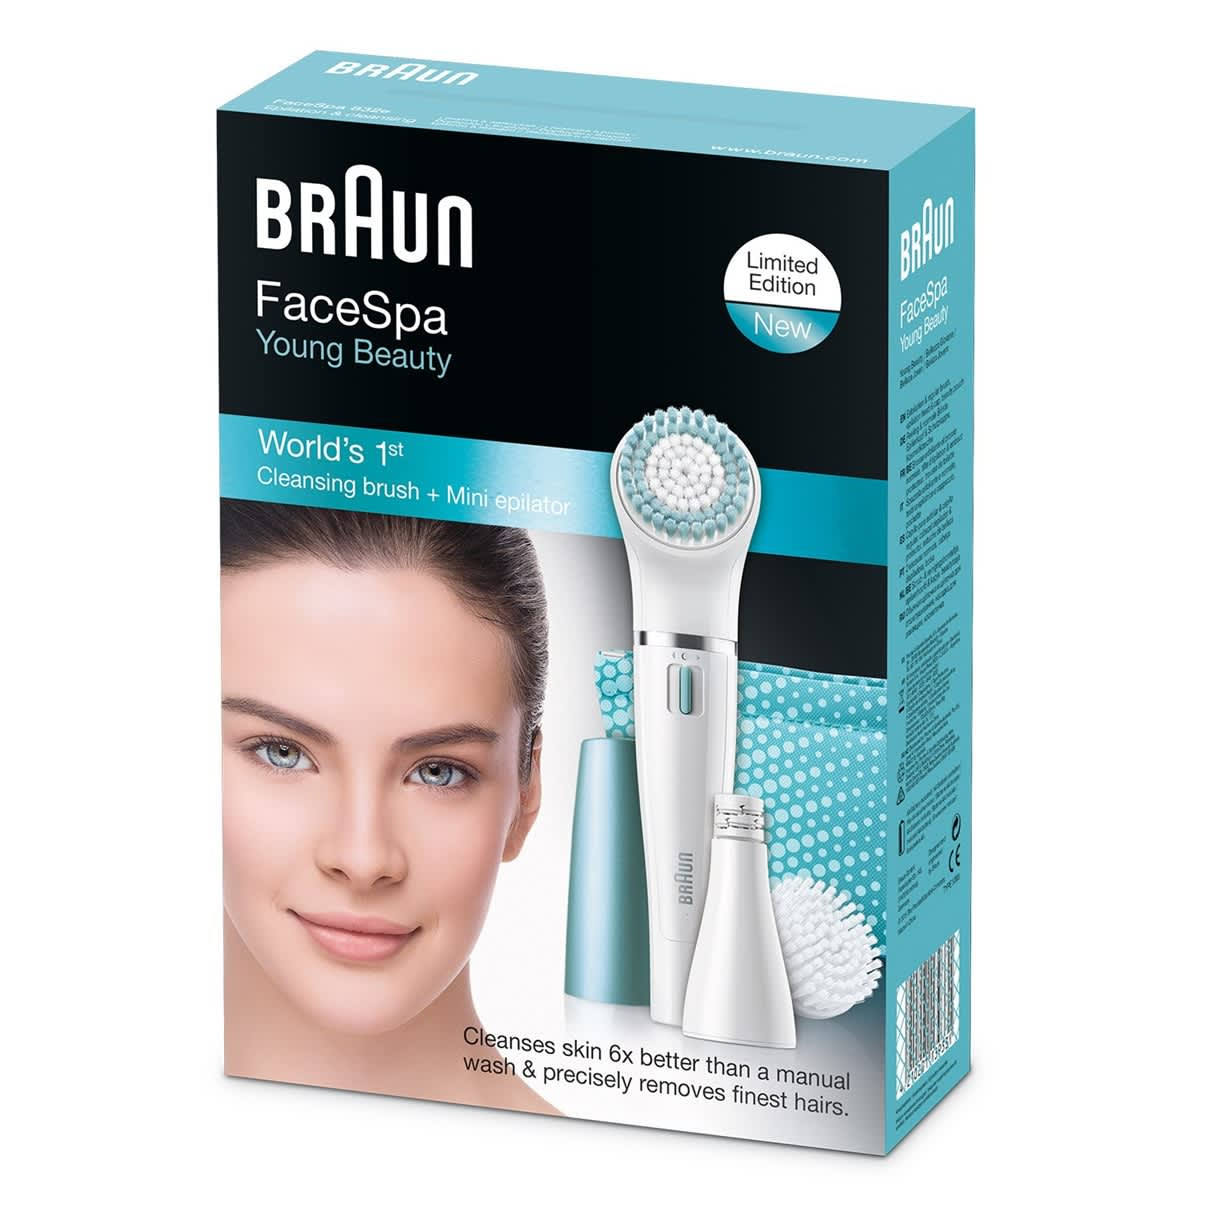 Braun Face 832e Premium Edition - facial epilator & facial cleansing brush with micro-oscillations - including a lighted mirror and beauty pouch